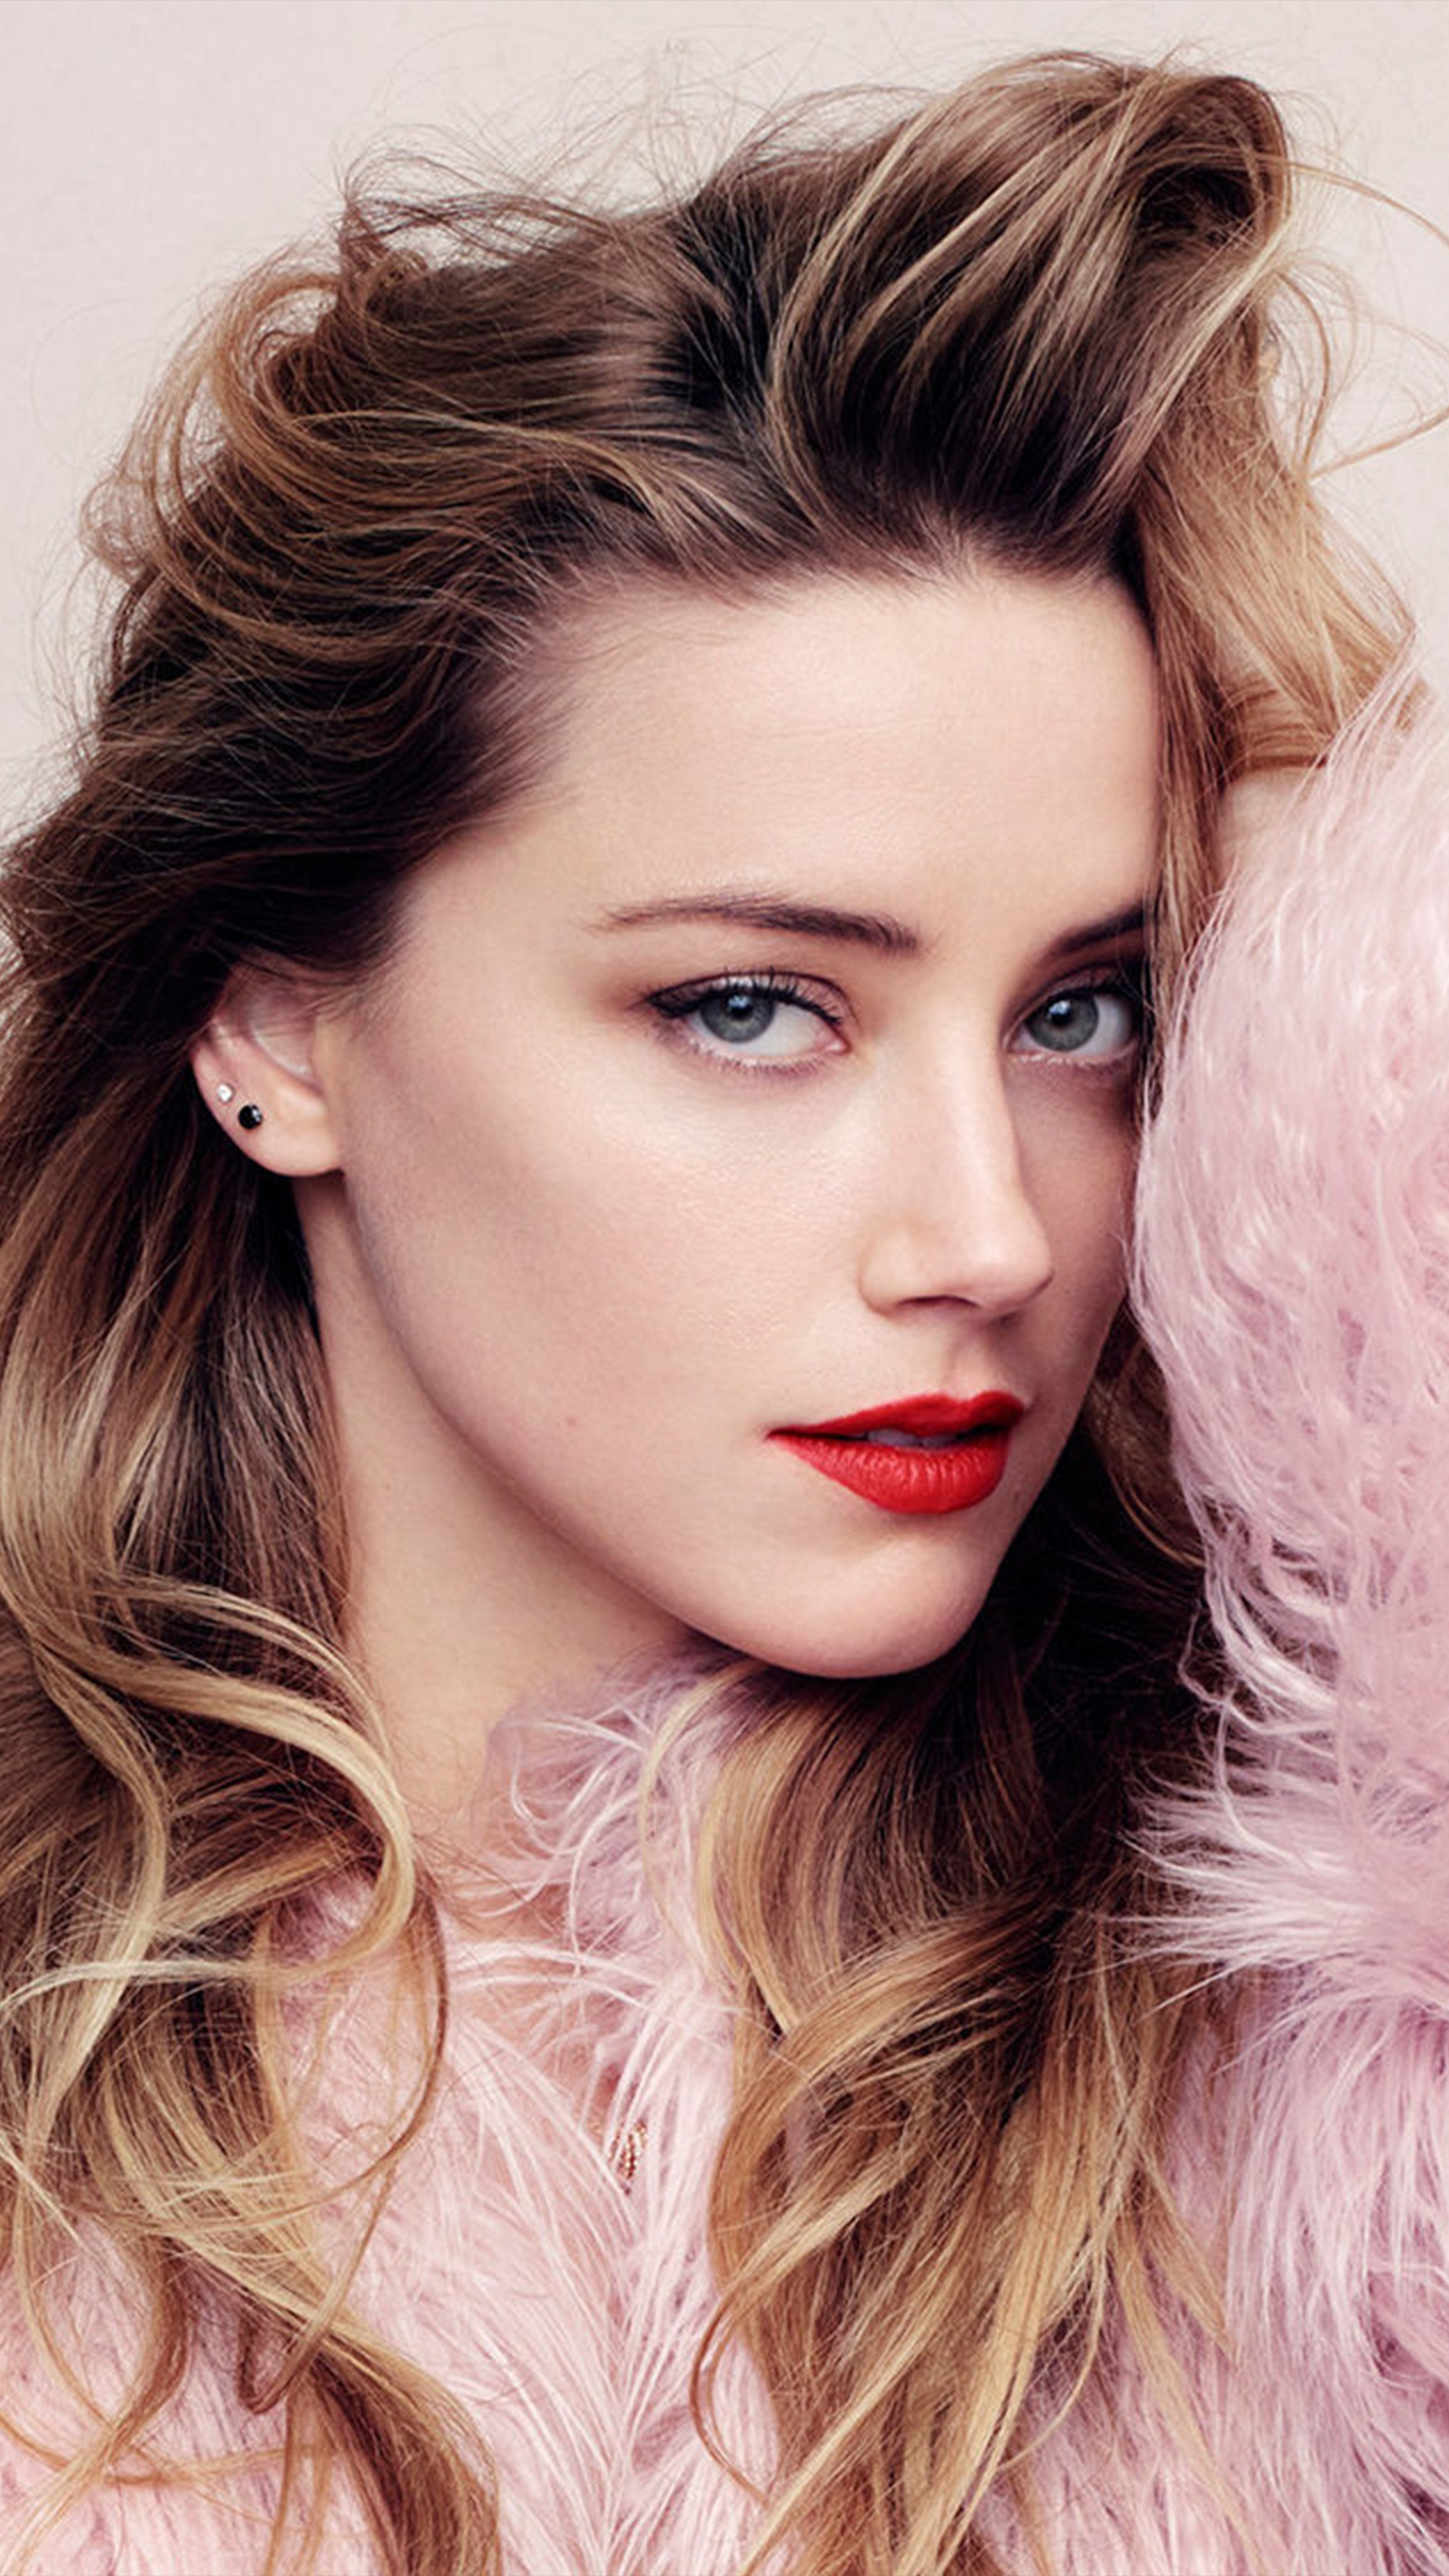 Download Gorgeous Amber Heard Free Pure 4K Ultra HD Mobile ...